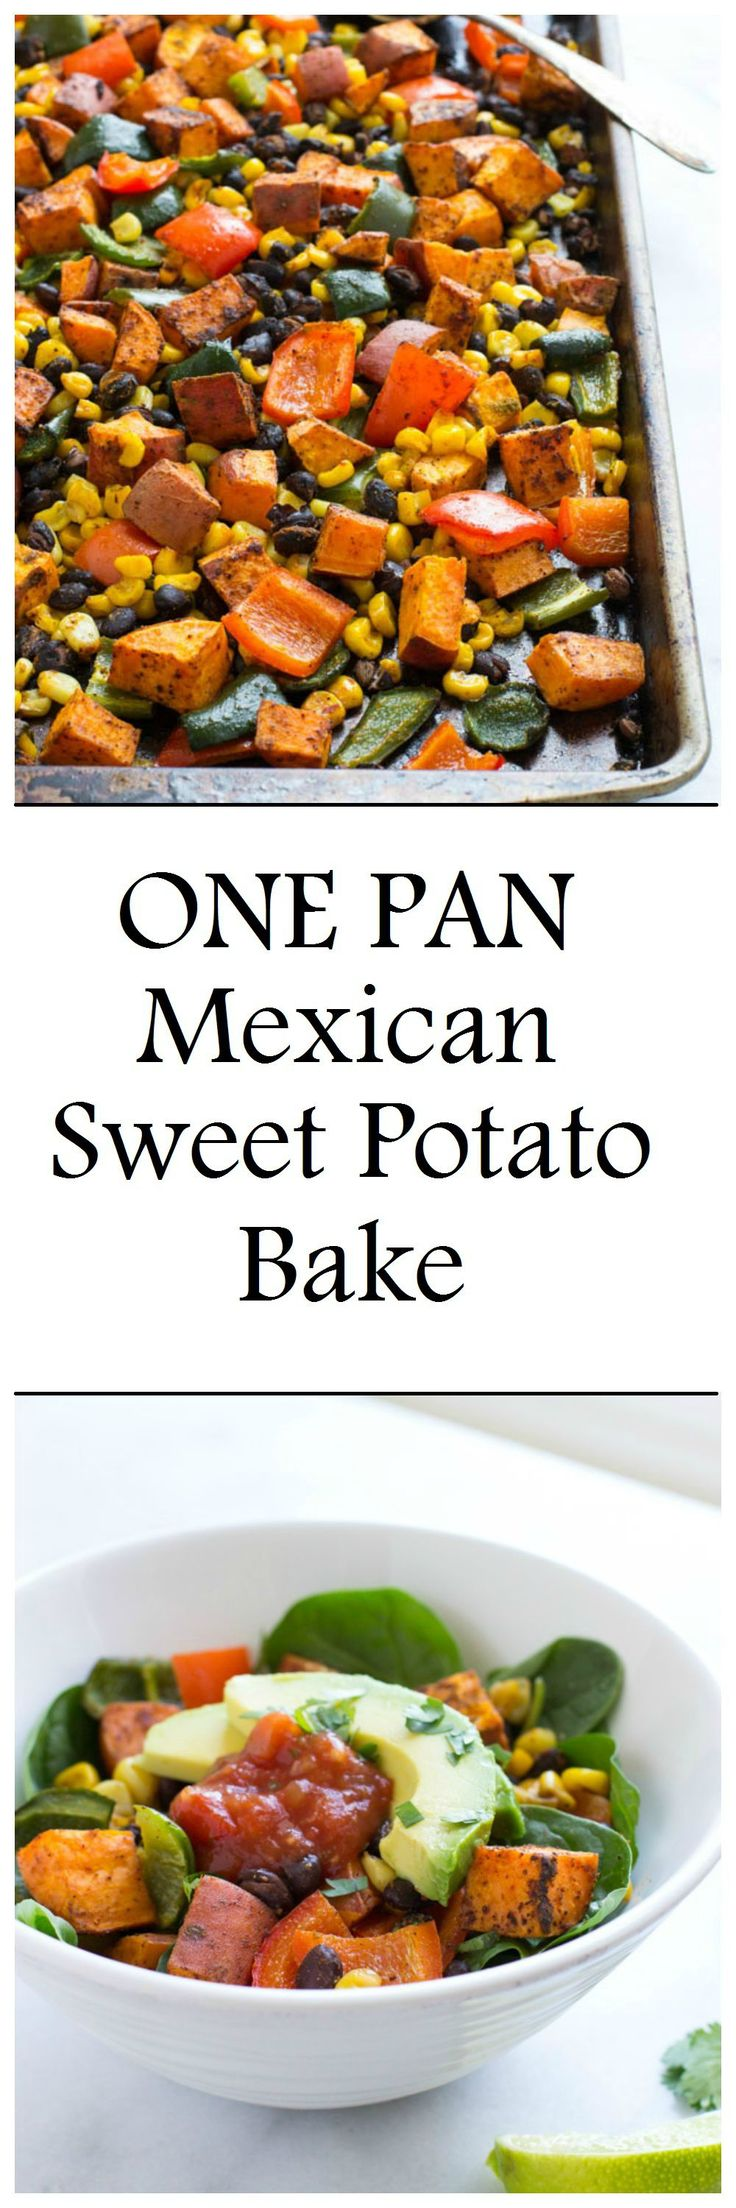 One Pan Mexican Sweet Potato Bake- a healthy meal with virtually zero clean-up! Ready in just 30 minutes!